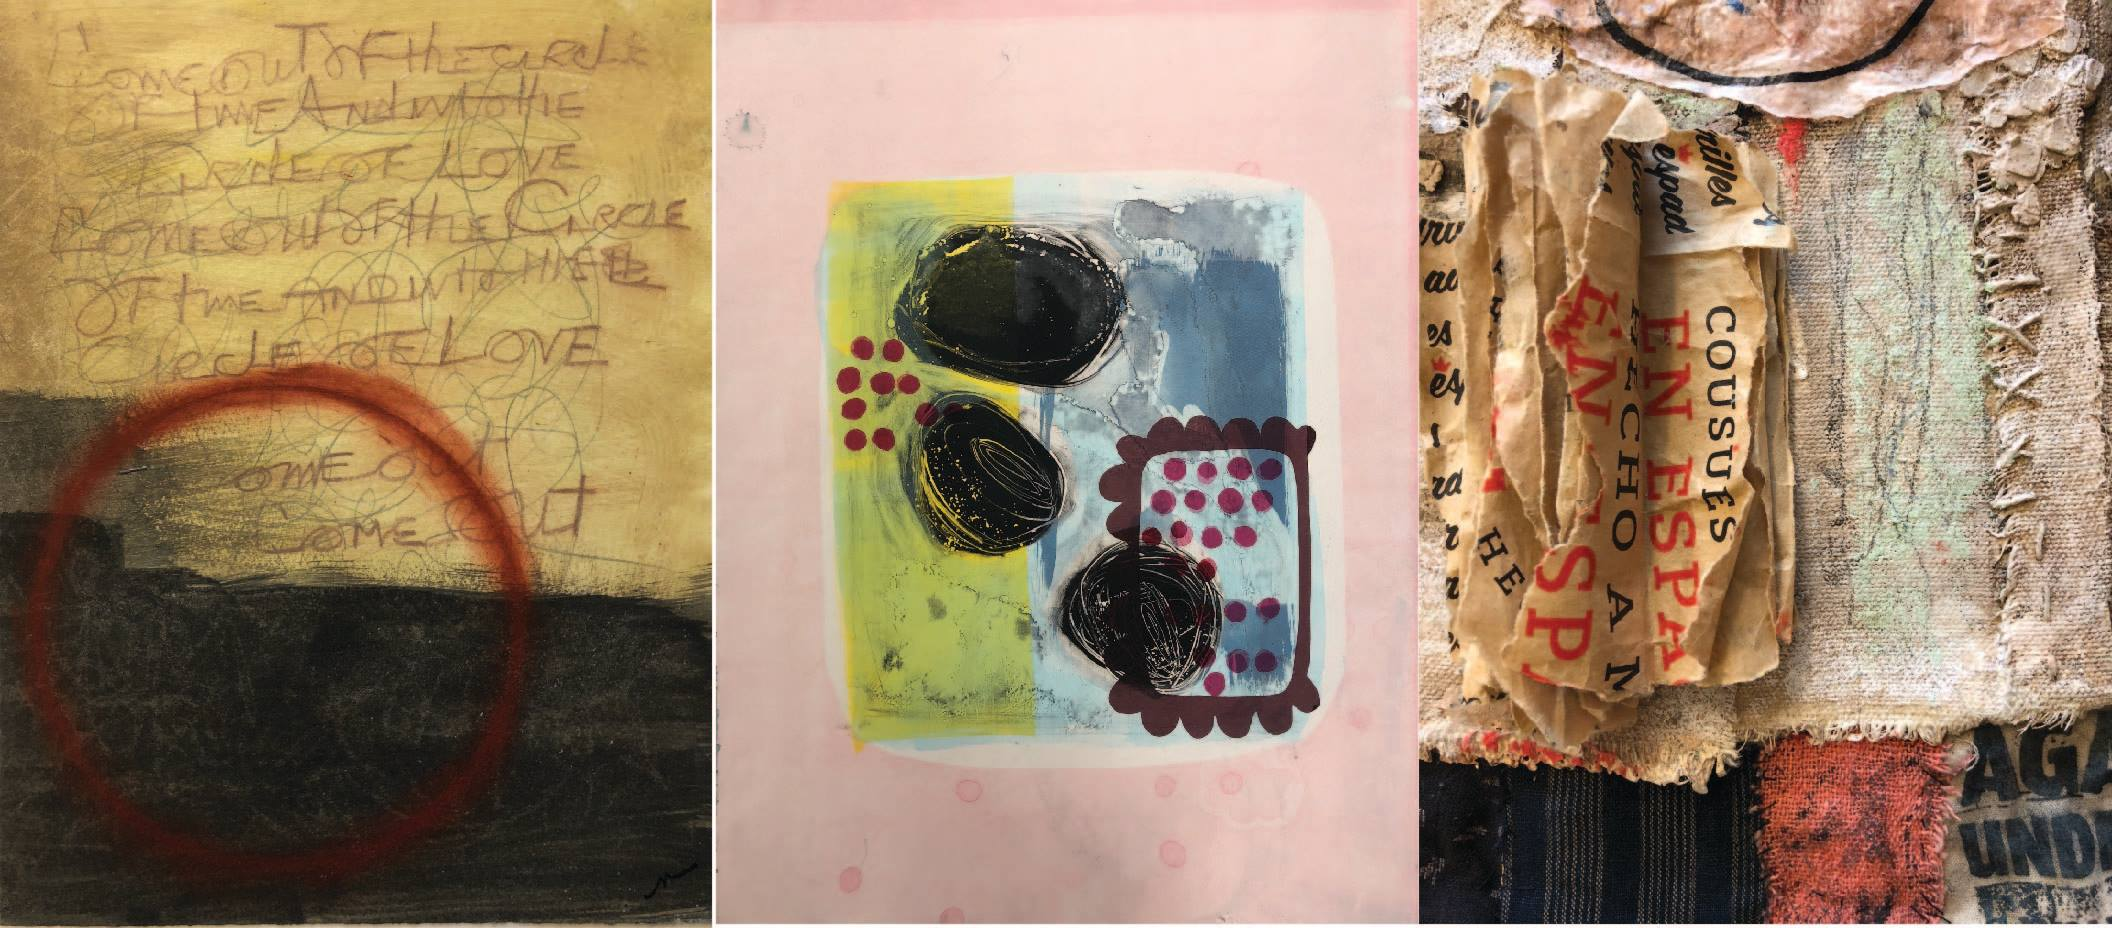 What We Remember, What We Forget - A Group Fiber Exhibit featuring Gina Alvarez, Suzy Farren, Carlene Fullerton, Eden Harris, Kelly Larson, Lyn Magee, and Nadine PotterApril 6–May 15, 2018